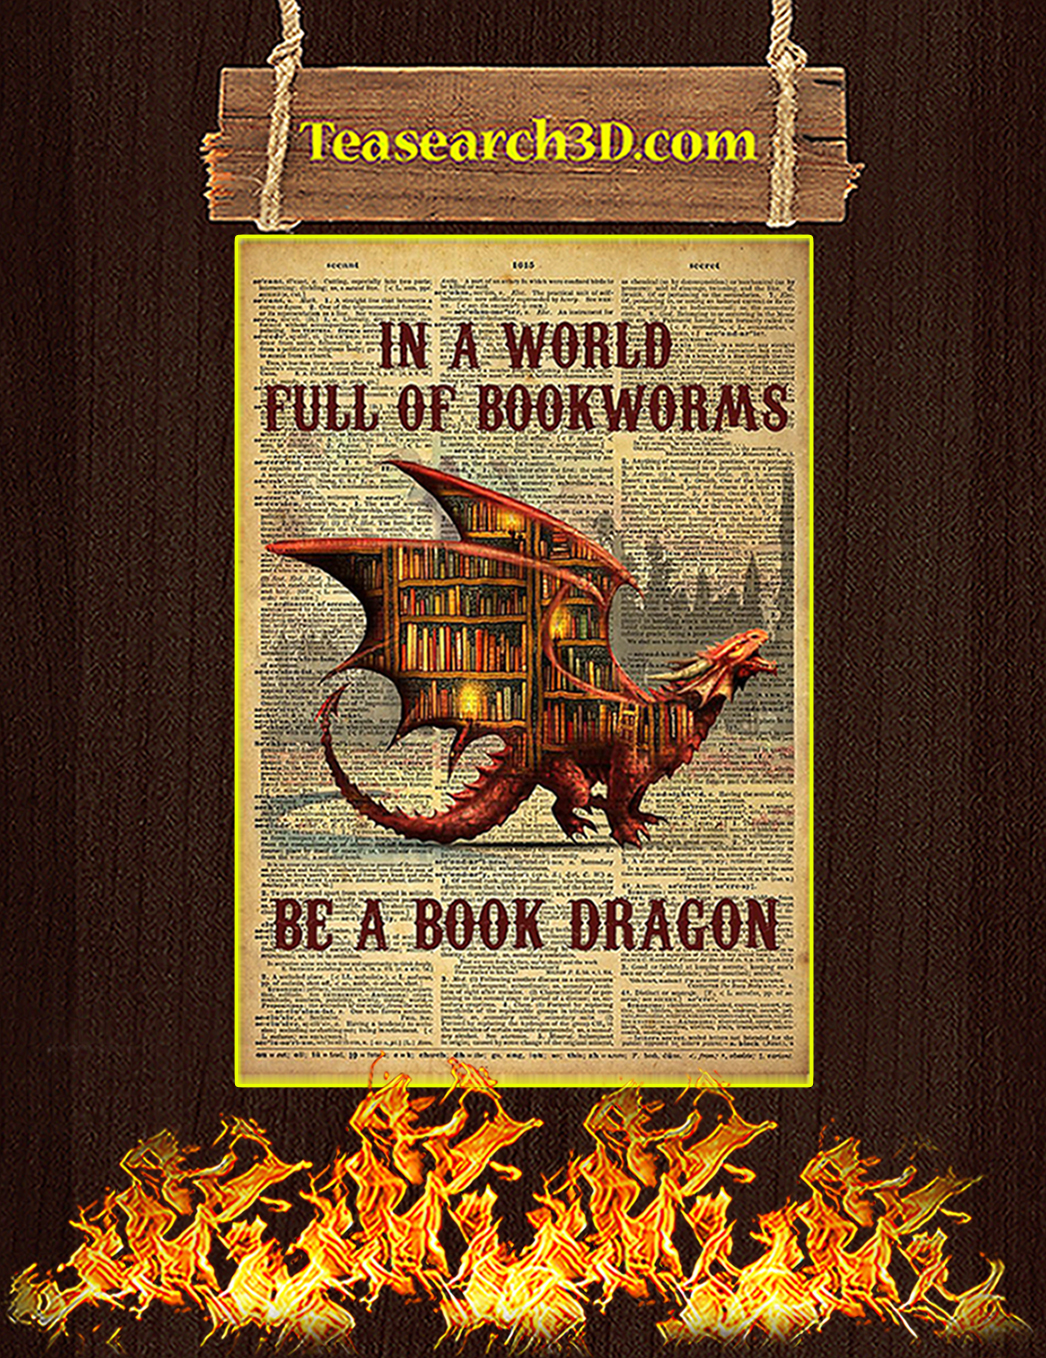 In a world full of bookworms be a book dragon poster A1